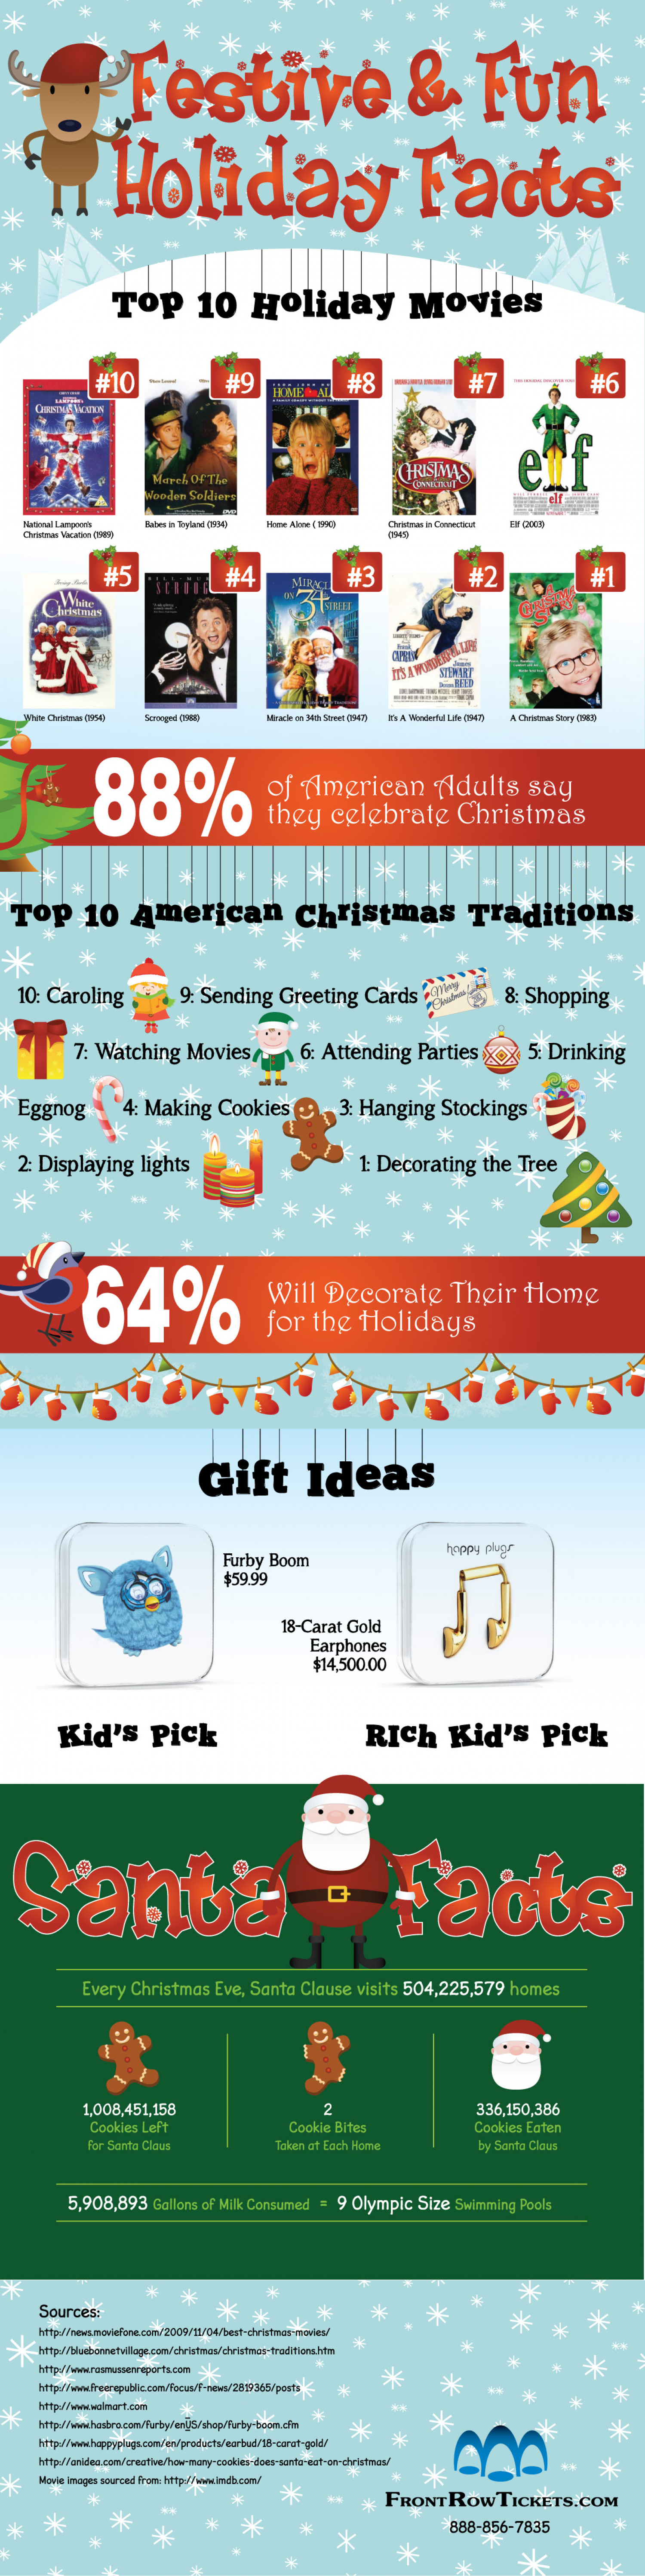 Festive & Fun Holiday Facts - How Thirsty is Santa? Infographic